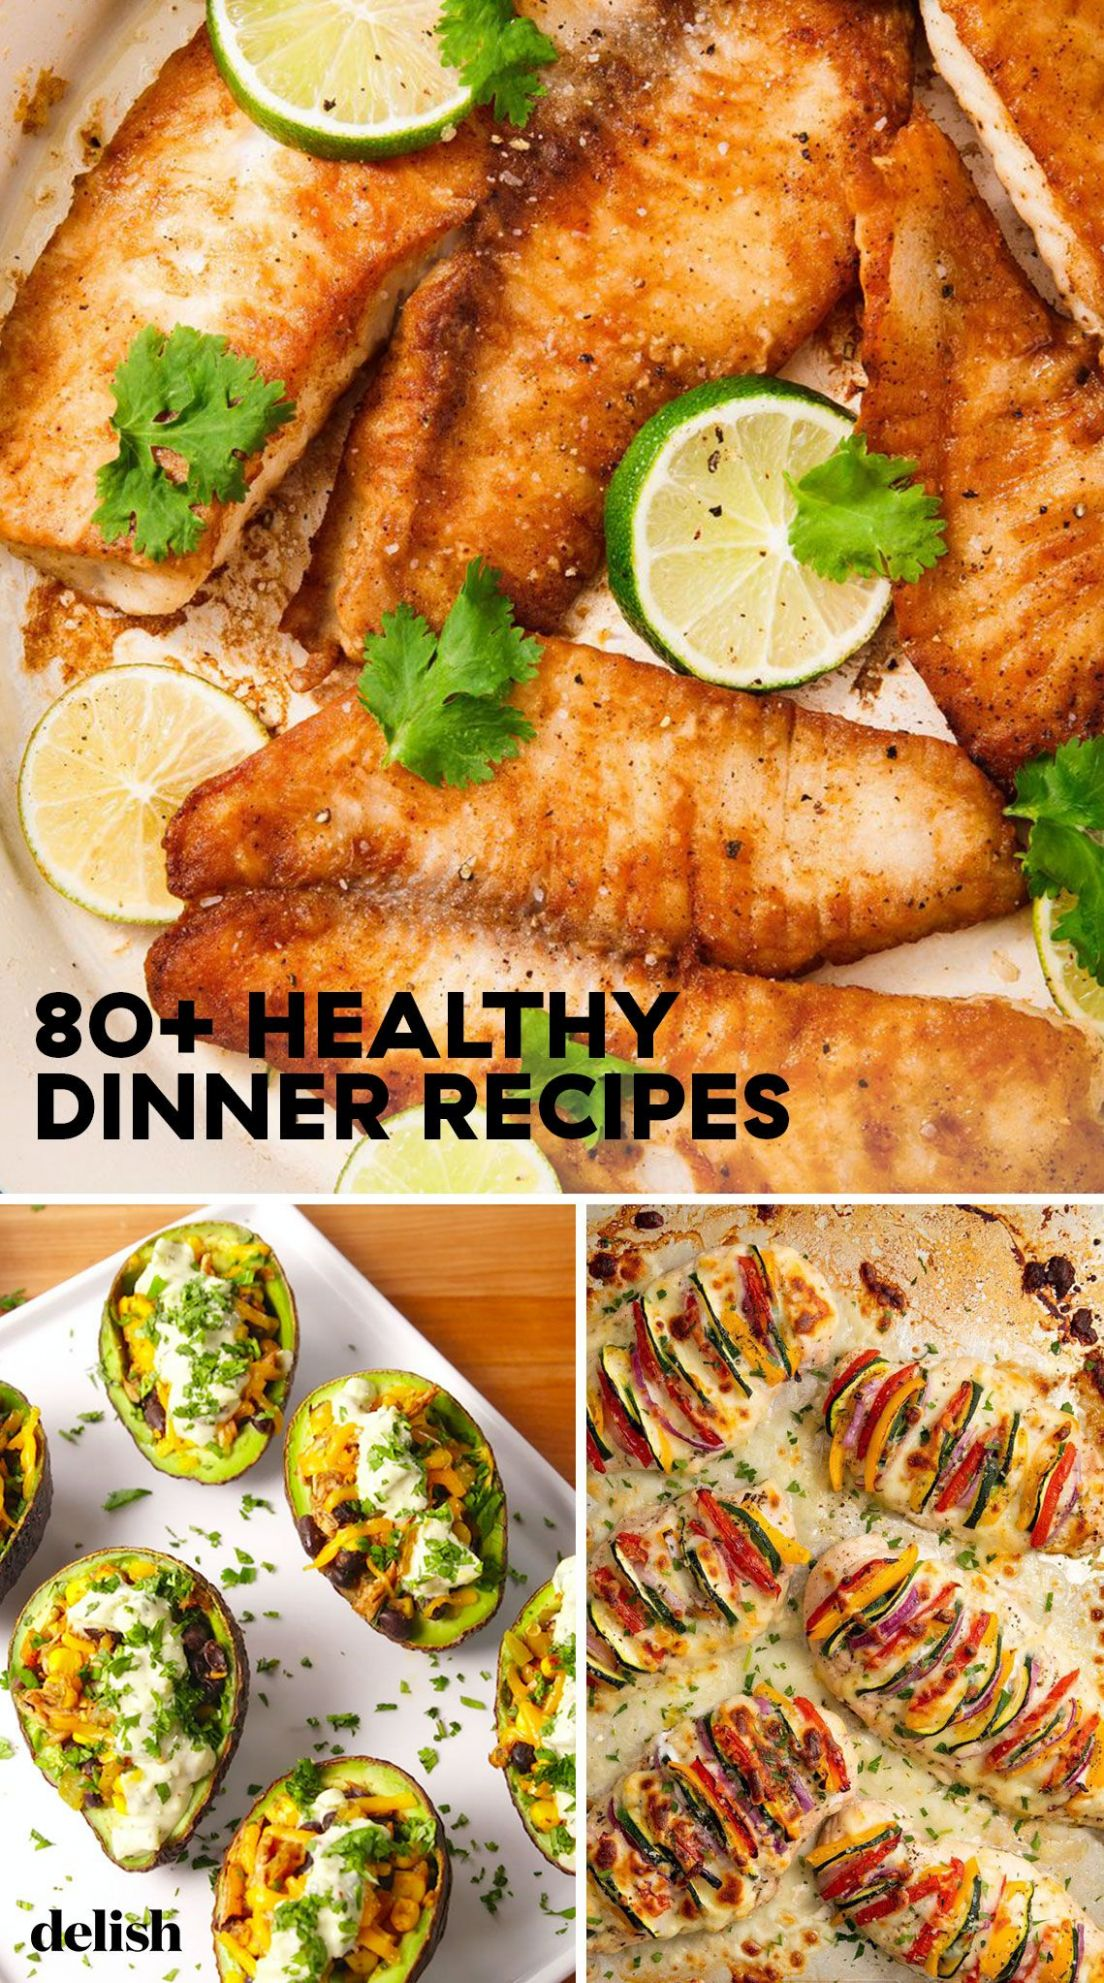 8+ Easy Healthy Dinner Ideas - Best Recipes for Healthy Dinners